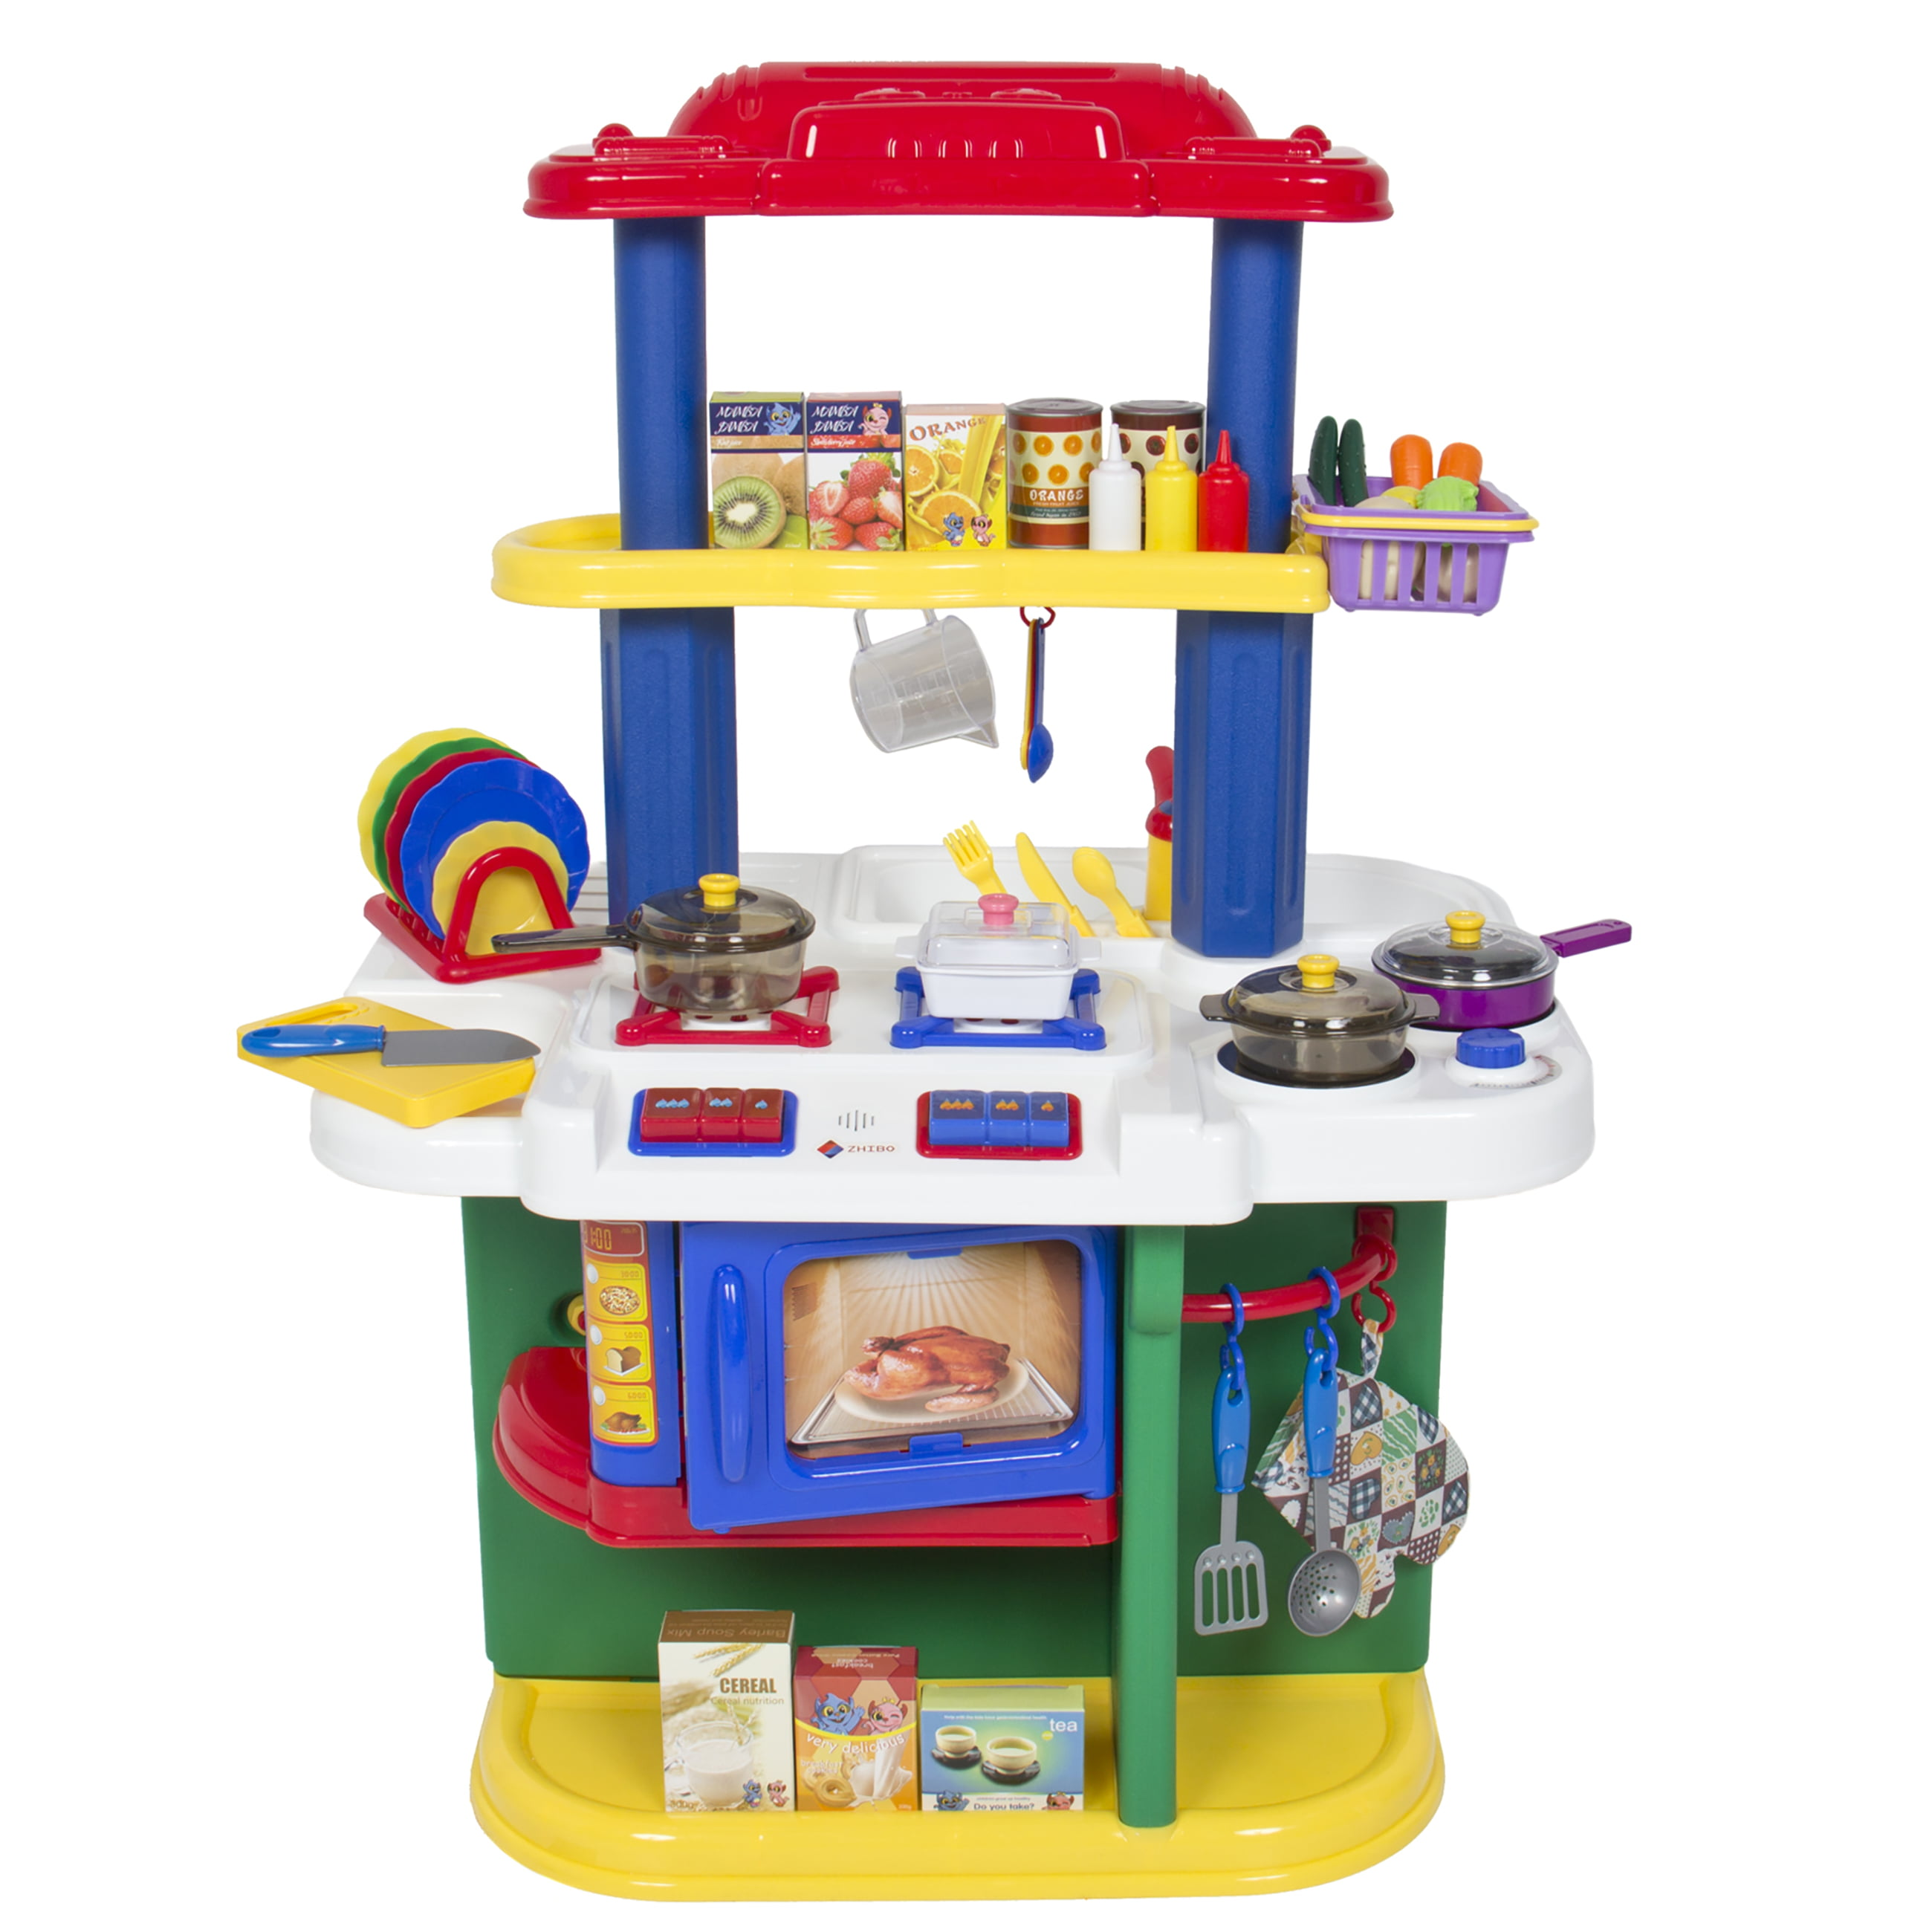 deluxe children kitchen cooking pretend play set with accessories  - deluxe children kitchen cooking pretend play set with accessories walmartcom